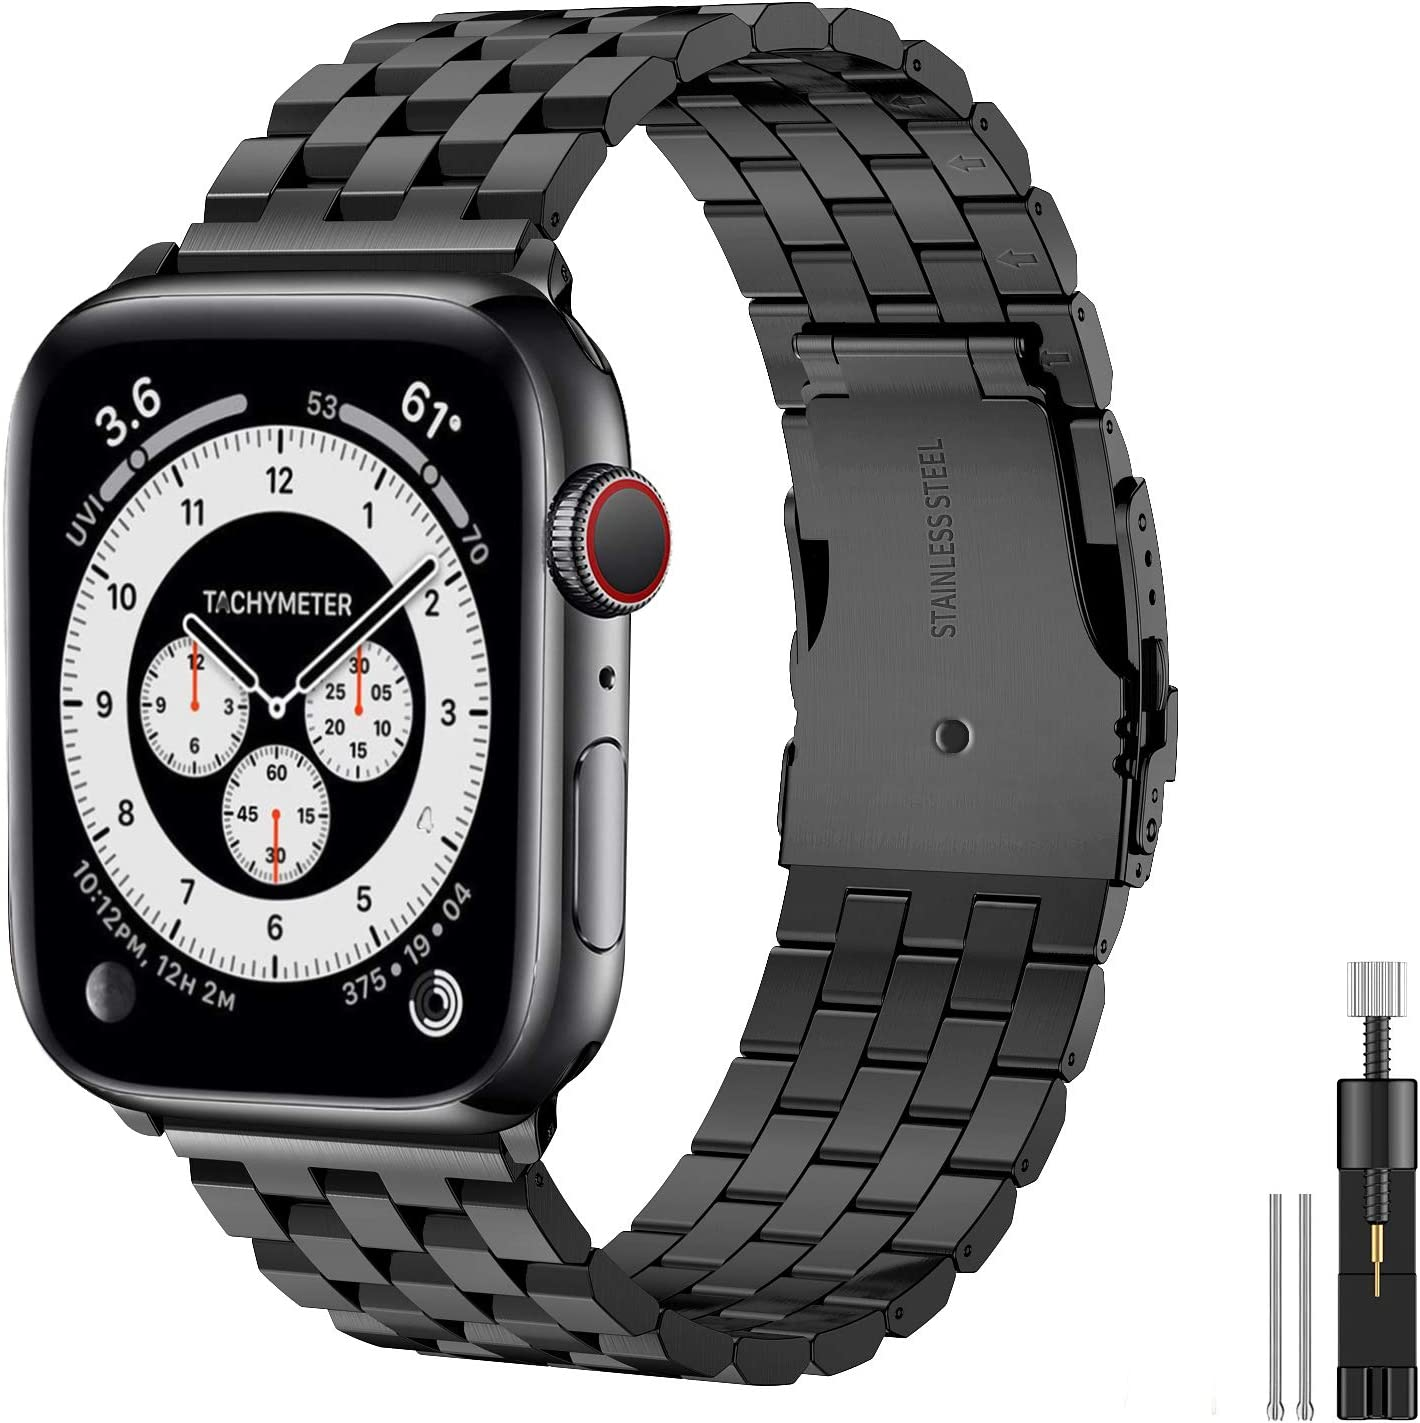 Hallsen Compatible with Apple Watch Bands 44mm 42mm, Upgraded Solid Stainless Steel Metal Apple Watch Band iWatch Replacement Strap for Apple Watch Series 6/5/4/3/2/1/SE (Black, 42/44mm)